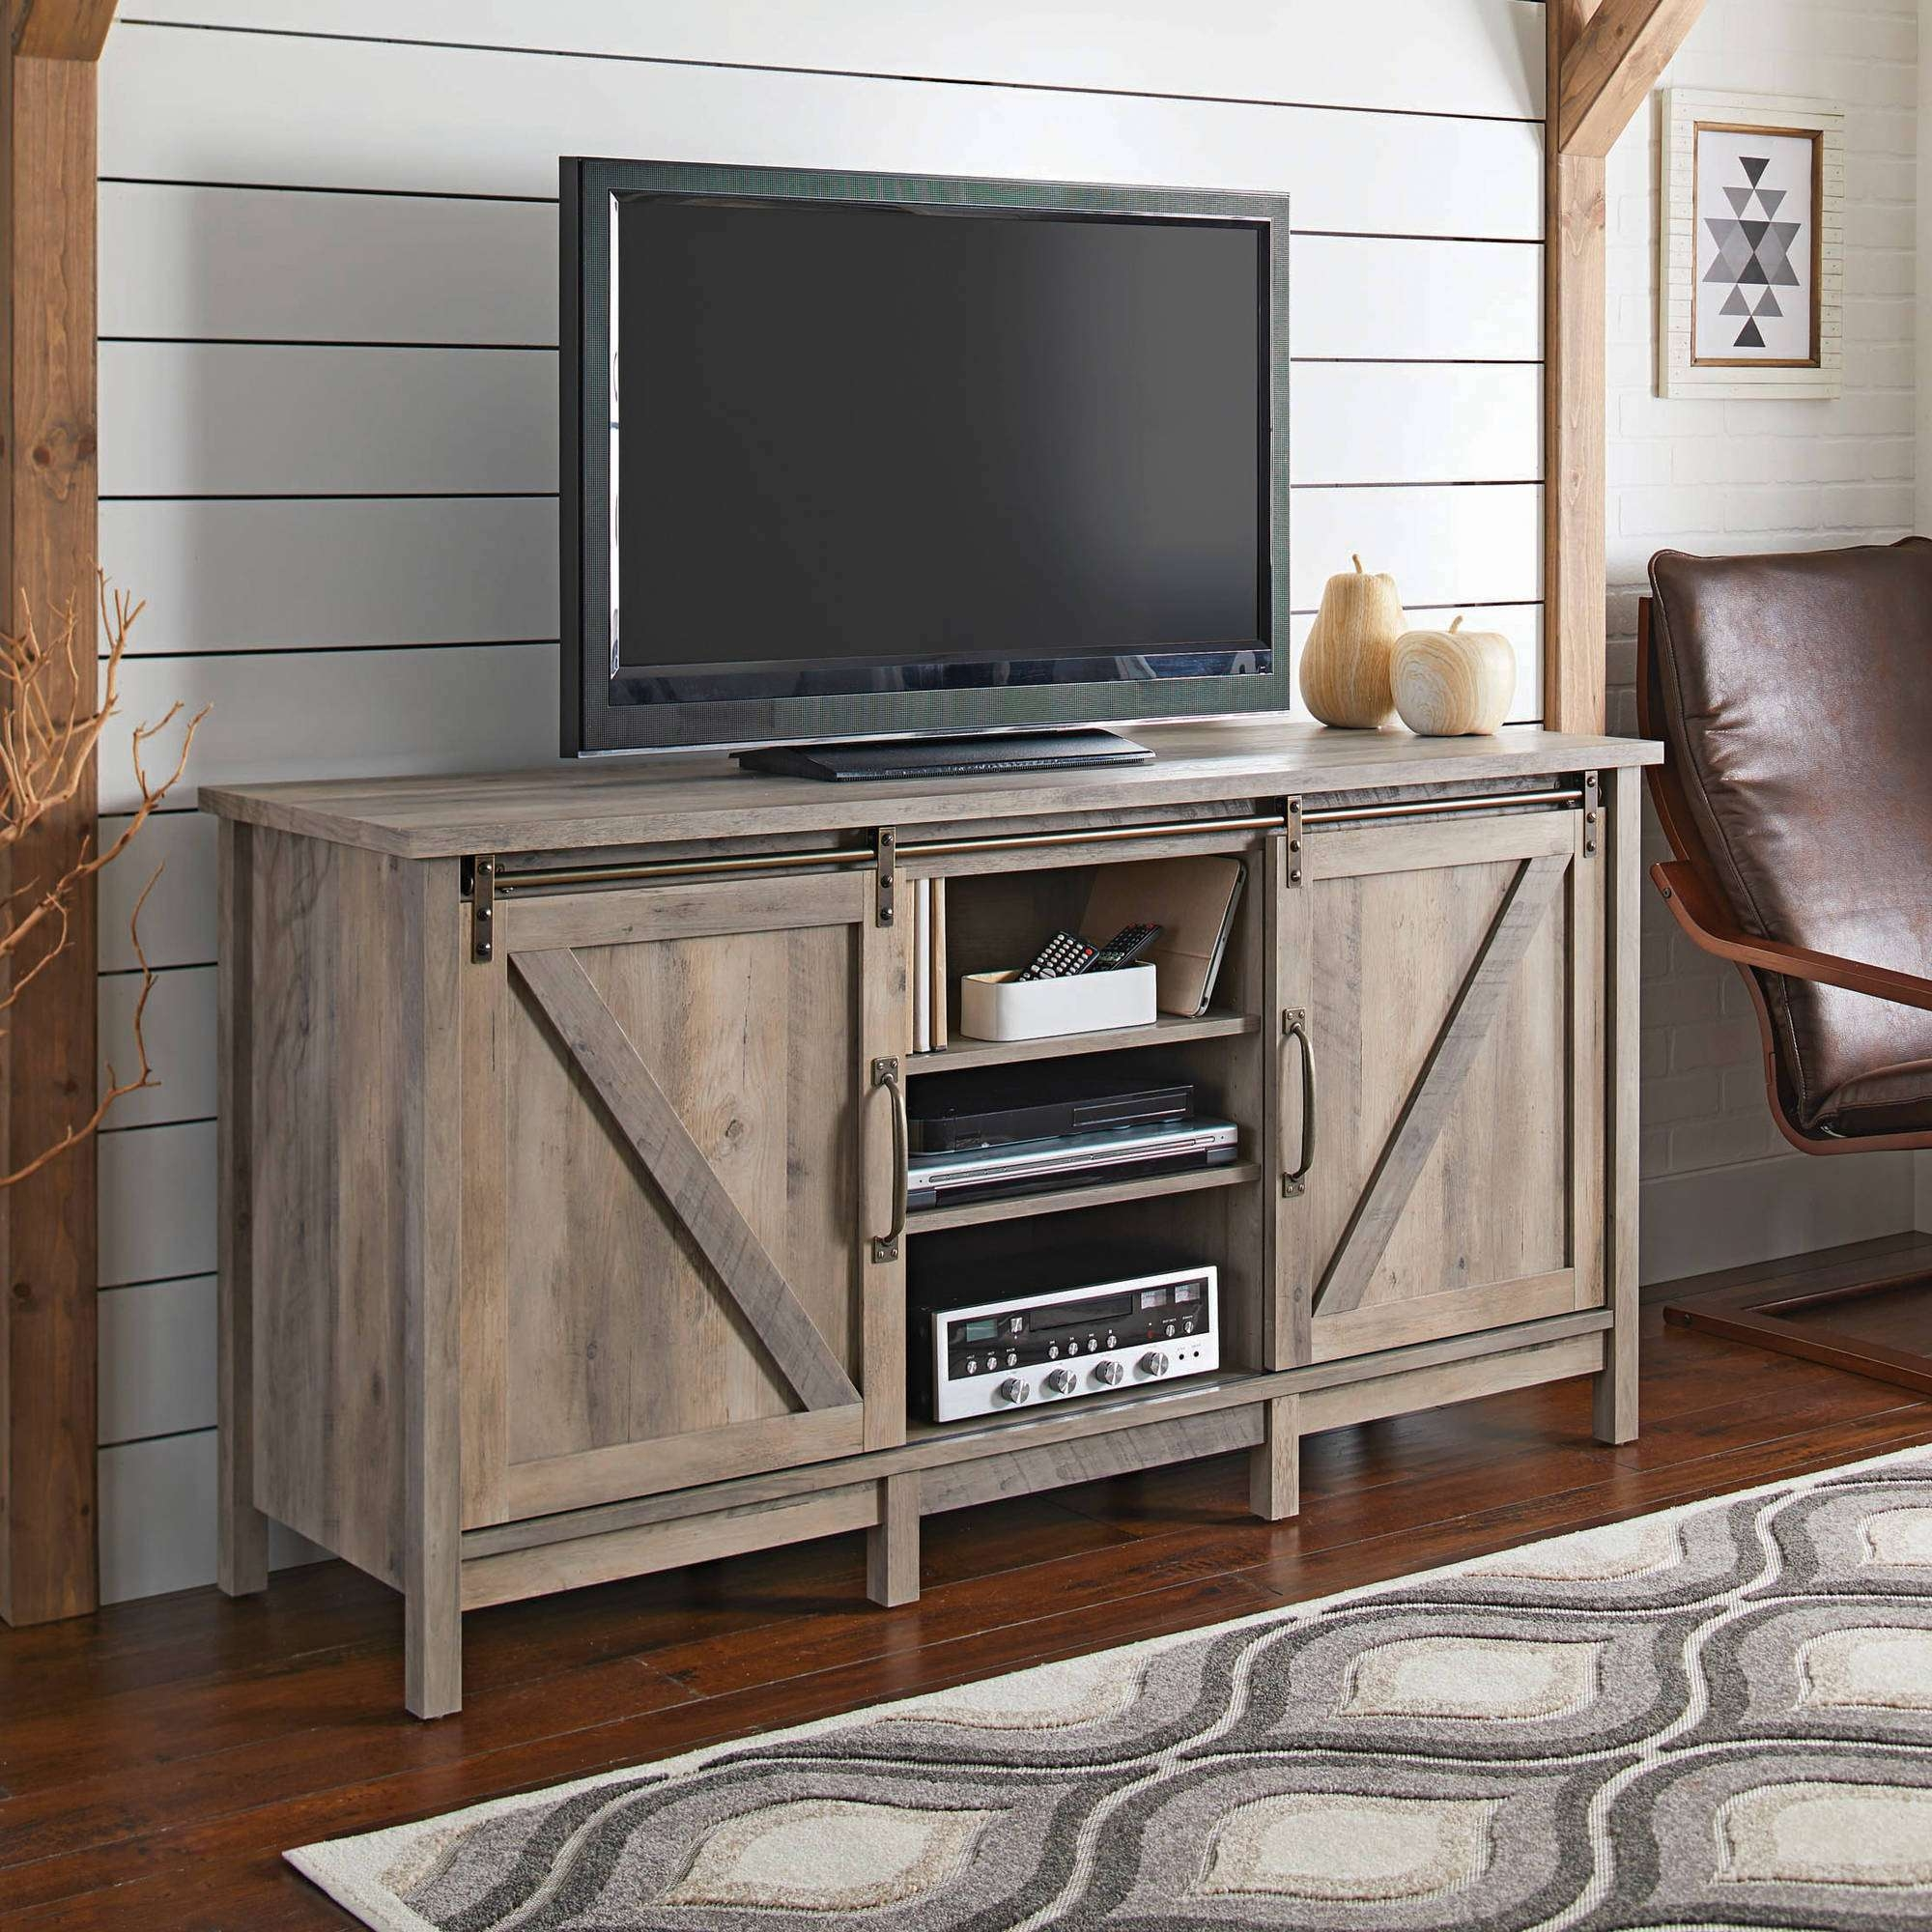 Tv : Best Tv Stand Amazing Upright Tv Stands Stimulating Tall For Upright Tv Stands (View 6 of 15)